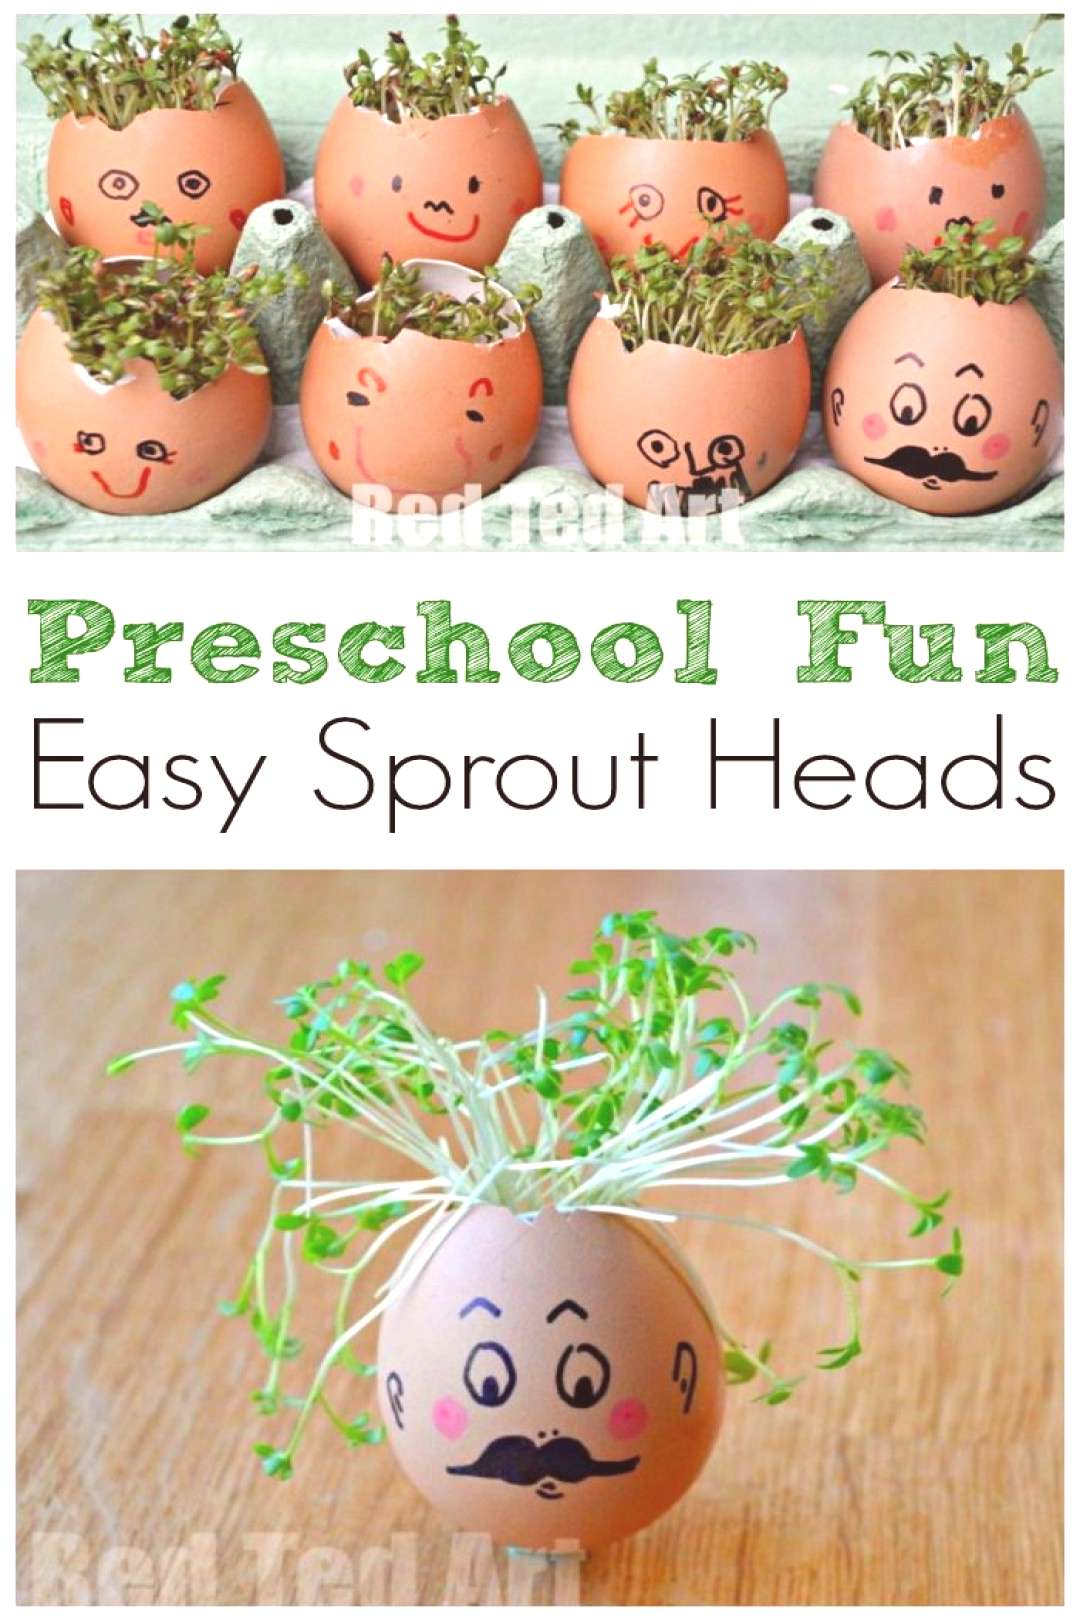 Spring Activities Cress Heads - Red Ted Art Red Ted Arts Egg Heads for Preschool. A quirky activi